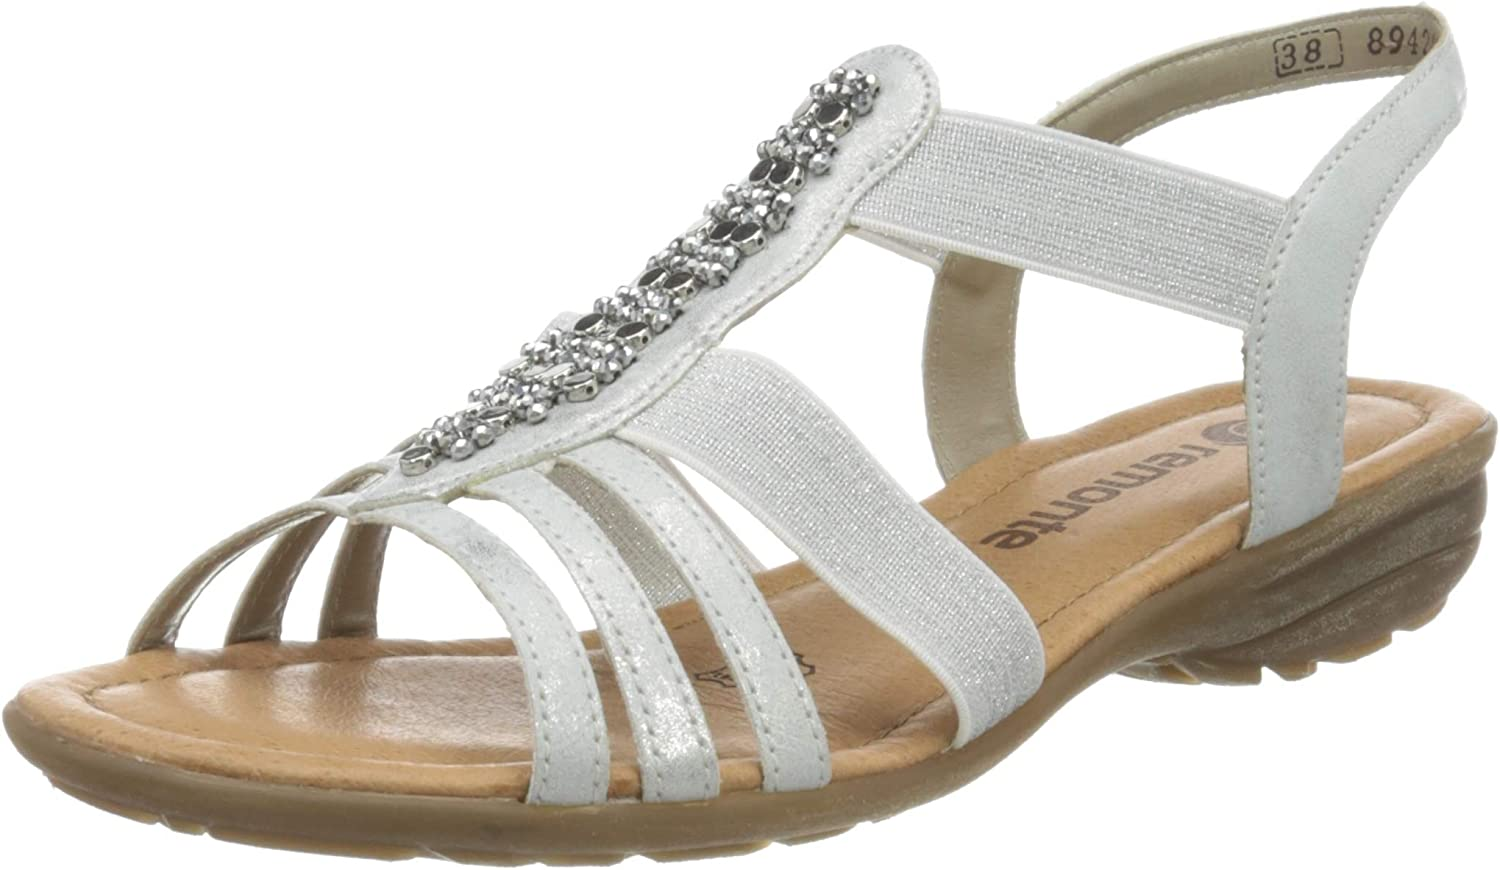 Remonte Store Women's Sandals Same day shipping T-Bar